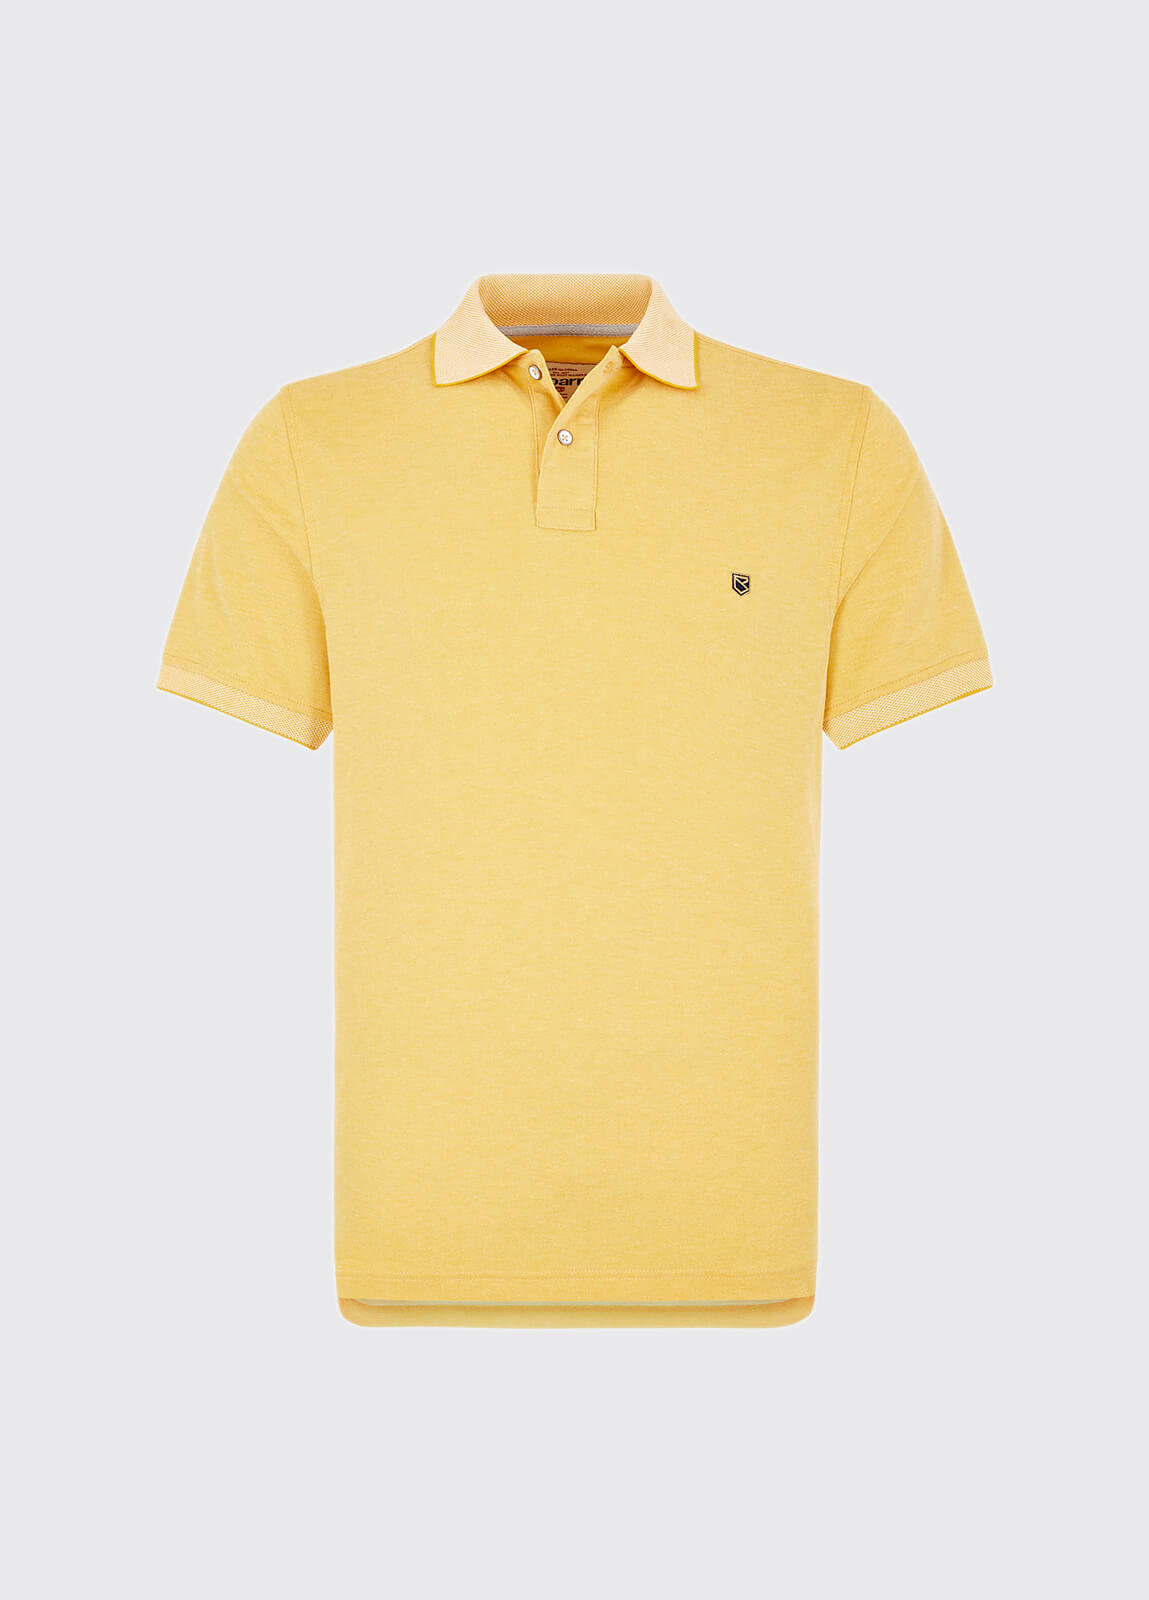 Kylemore polo shirt - Sunflower